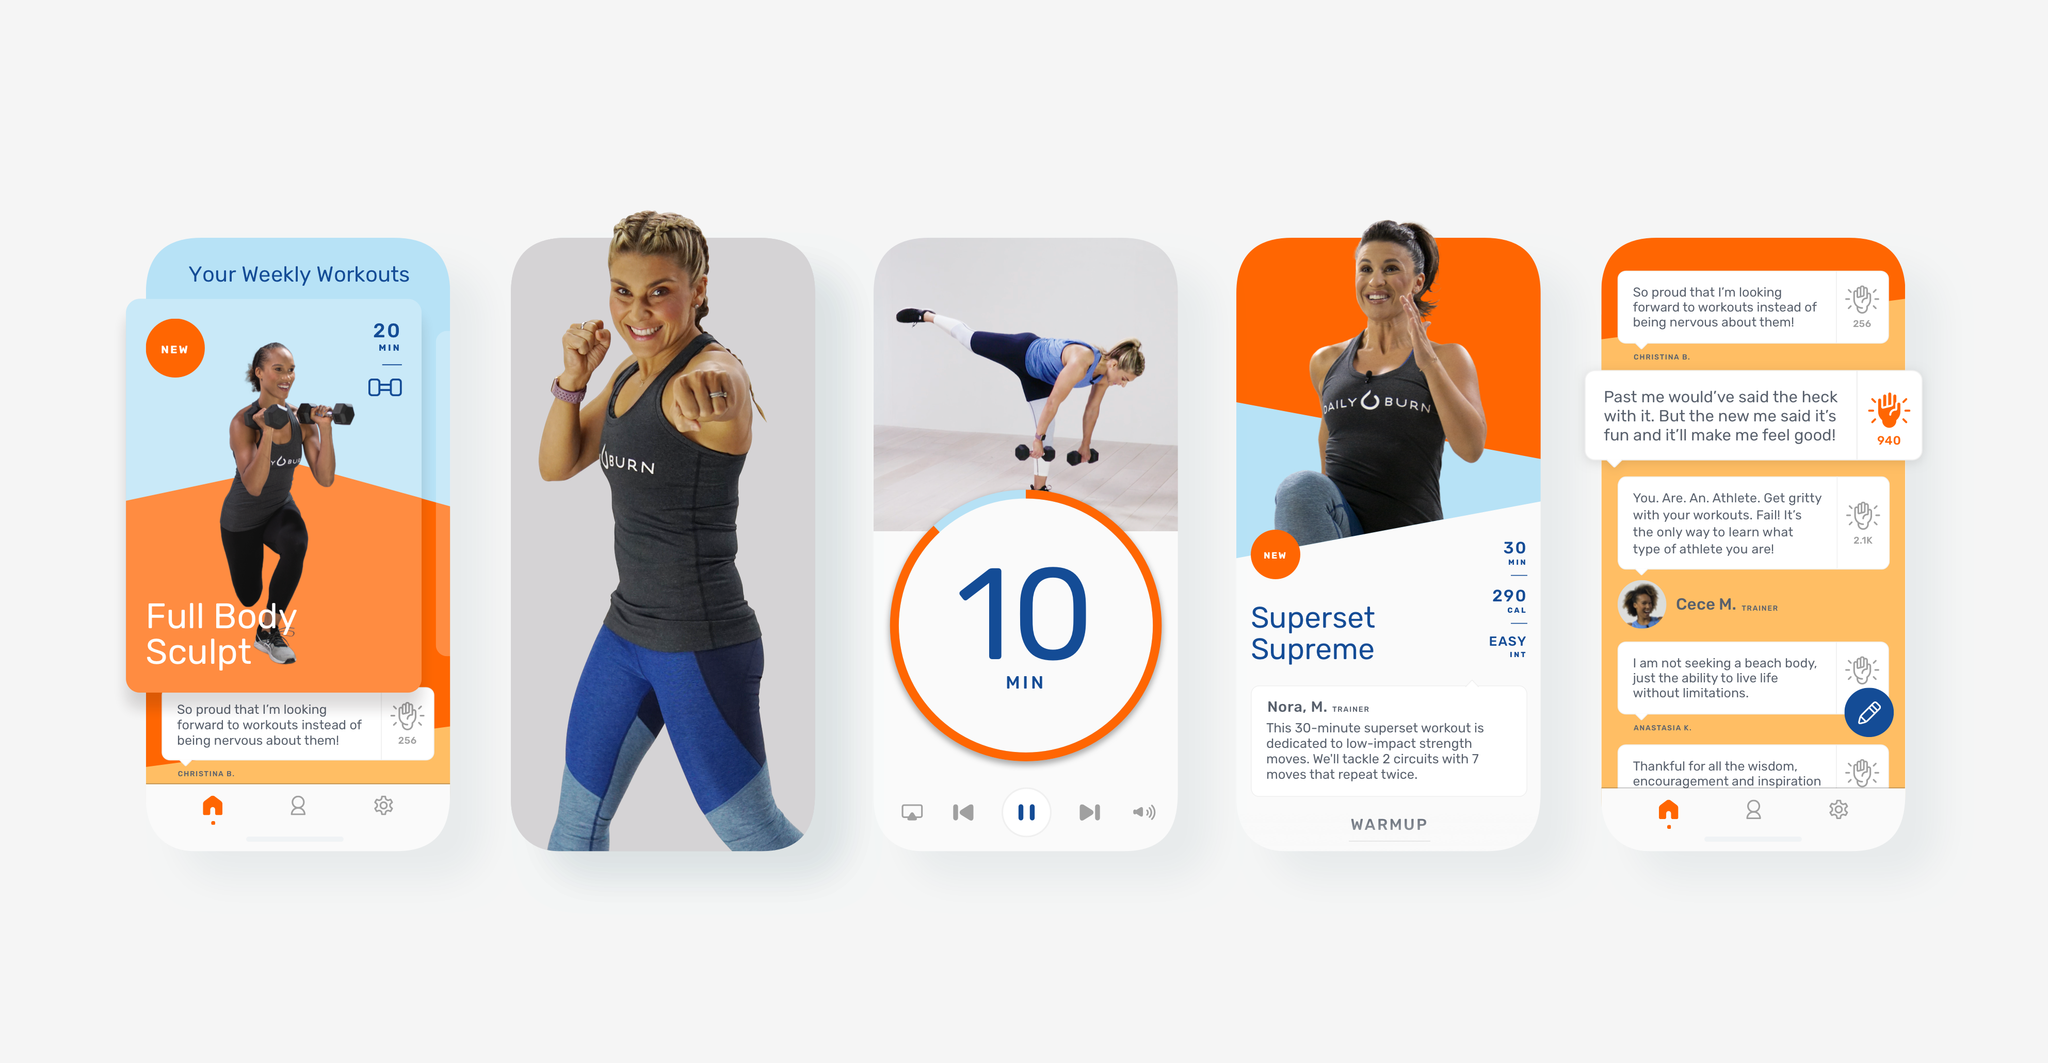 Daily Burn plans a new line of fitness apps, starting with HIIT Workouts | TechCrunch